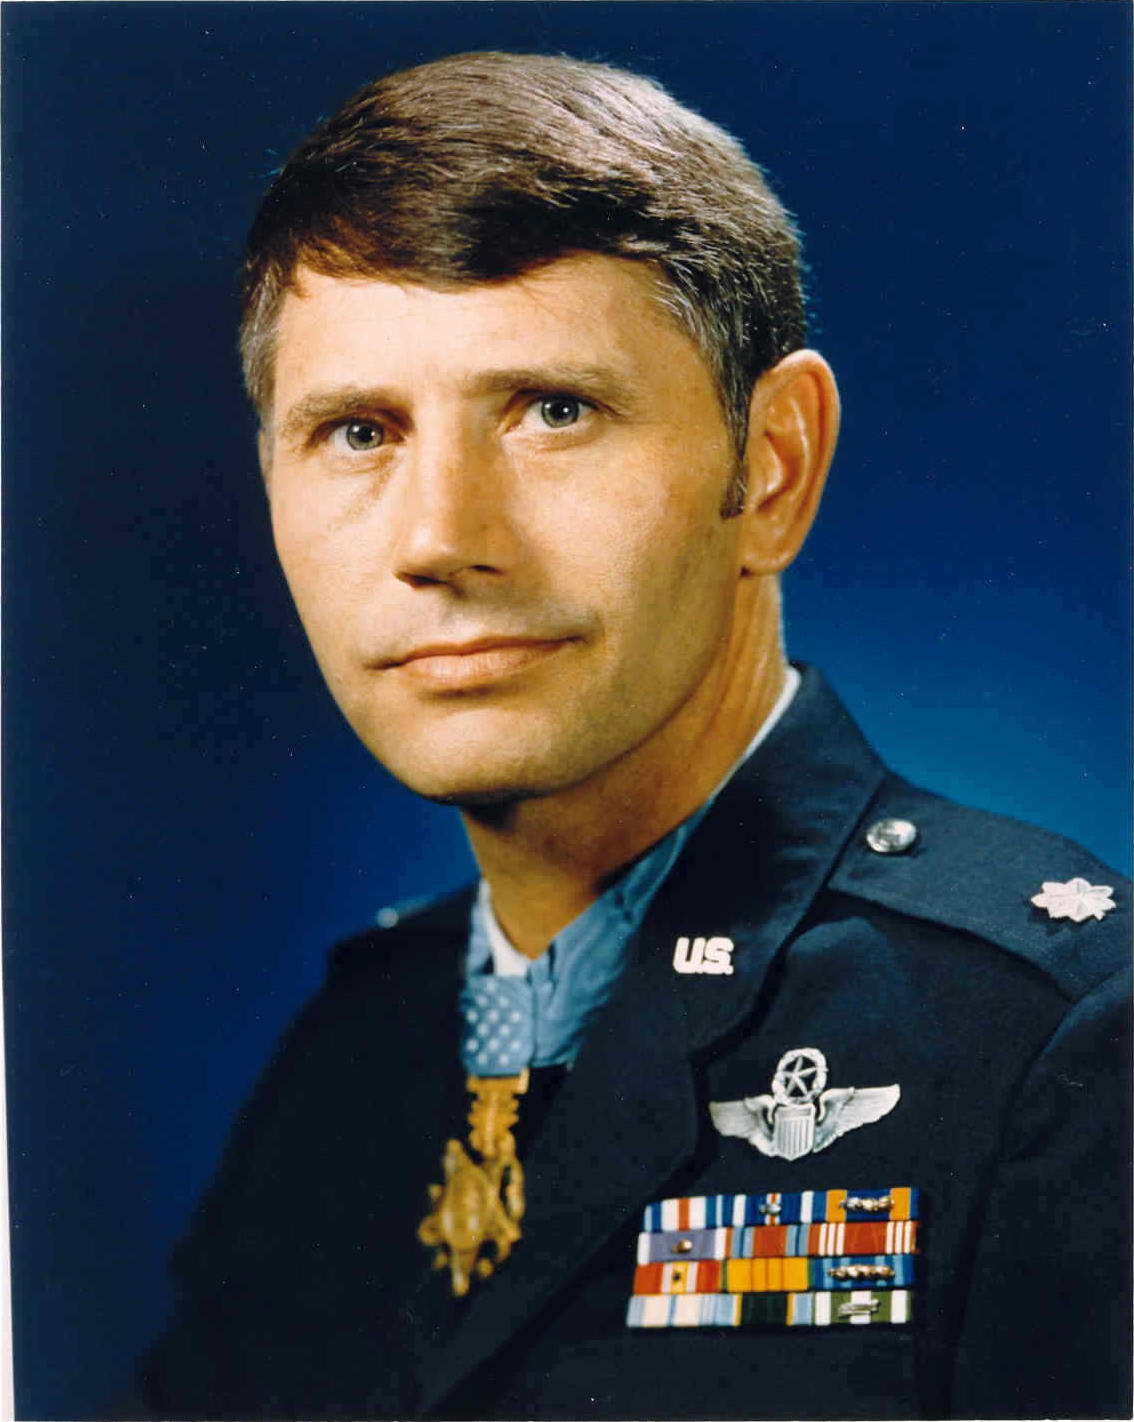 Medal of Honor recipient Colonel Leo K. Thorsness